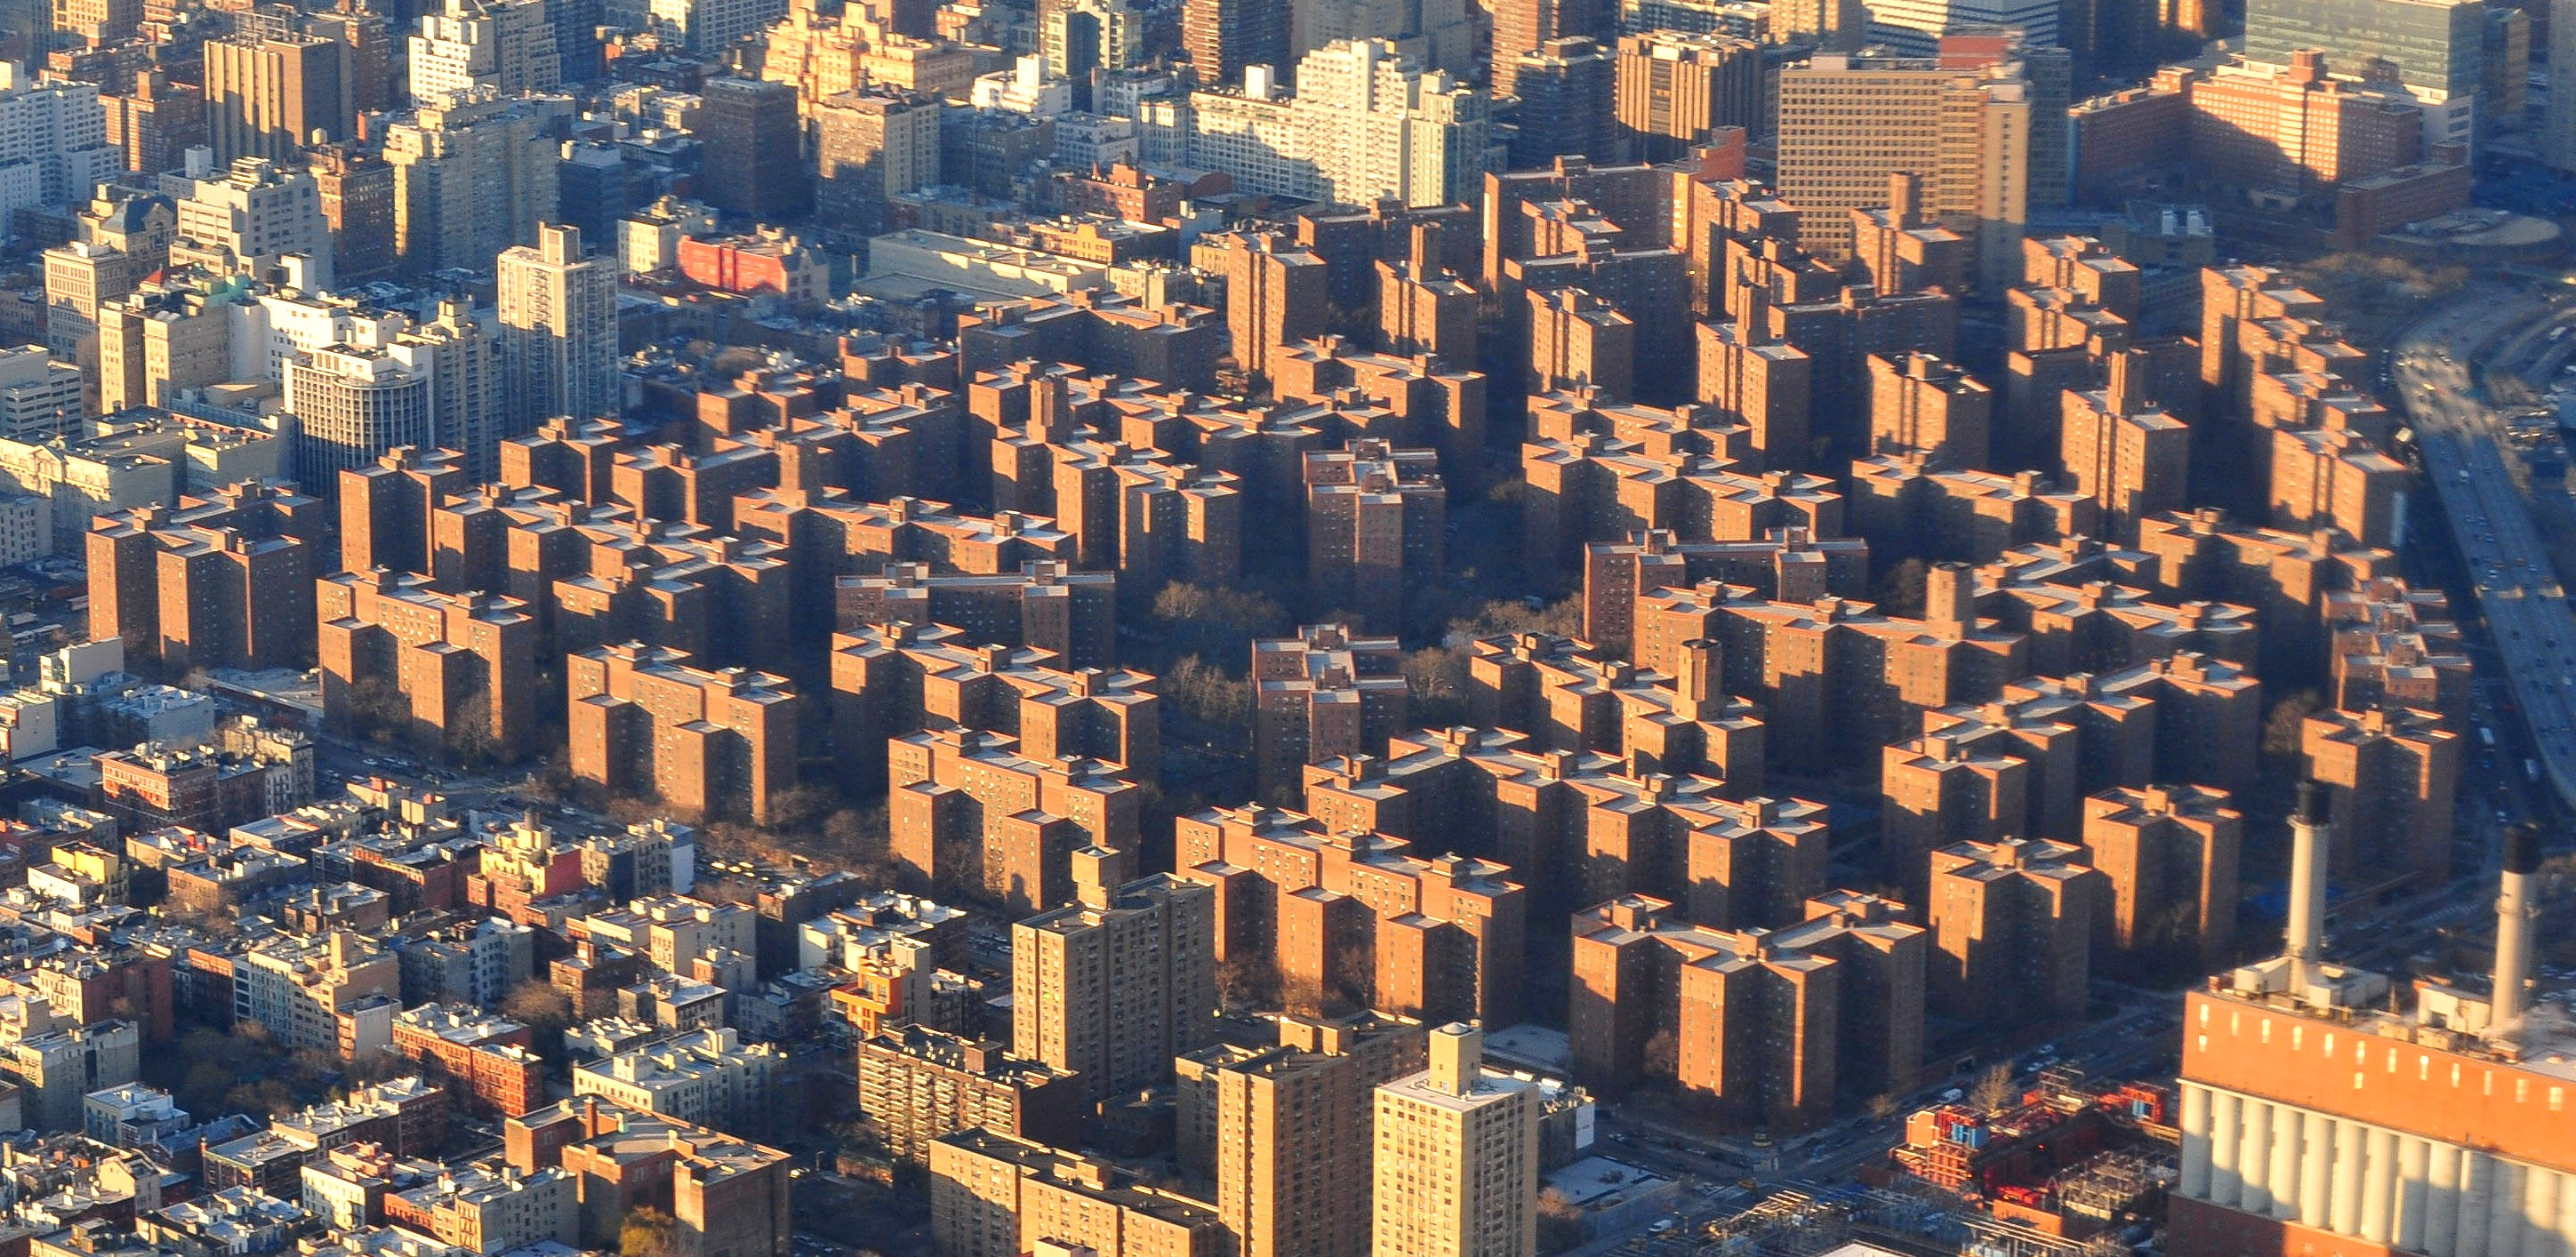 How a controversial european architect shaped new york for Stuyvesant town nyc